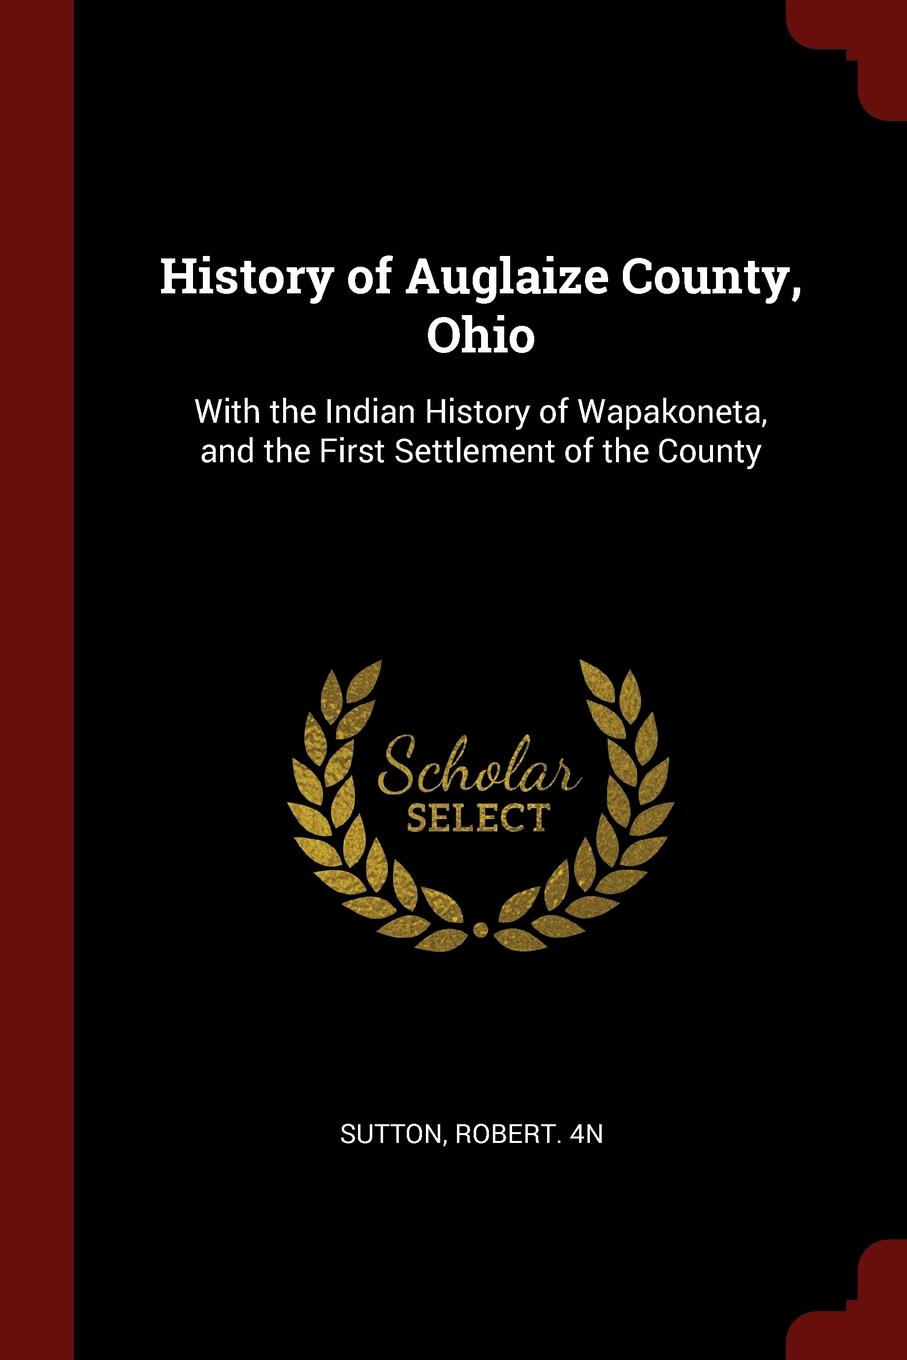 Robert 4n Sutton History of Auglaize County, Ohio. With the Indian History of Wapakoneta, and the First Settlement of the County